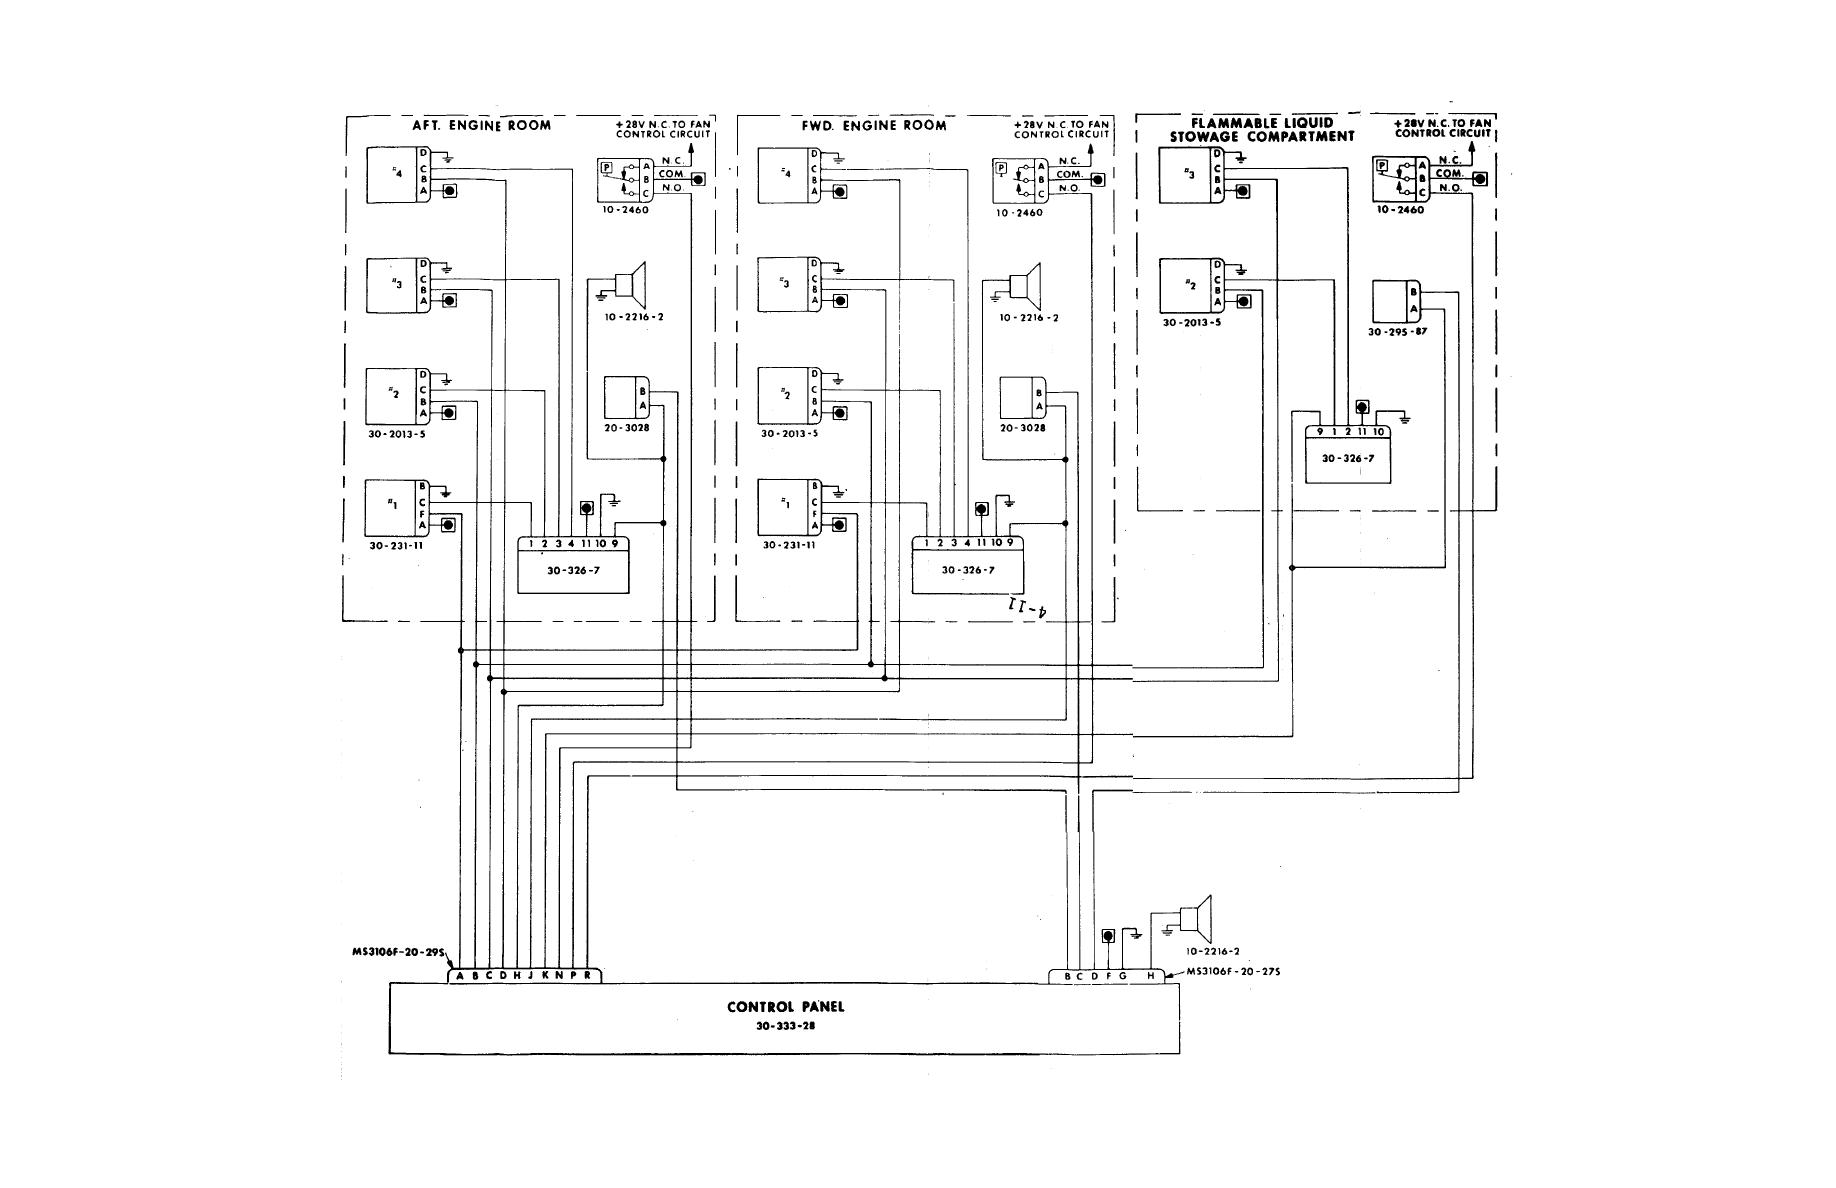 class a wiring diagram for fire alarm